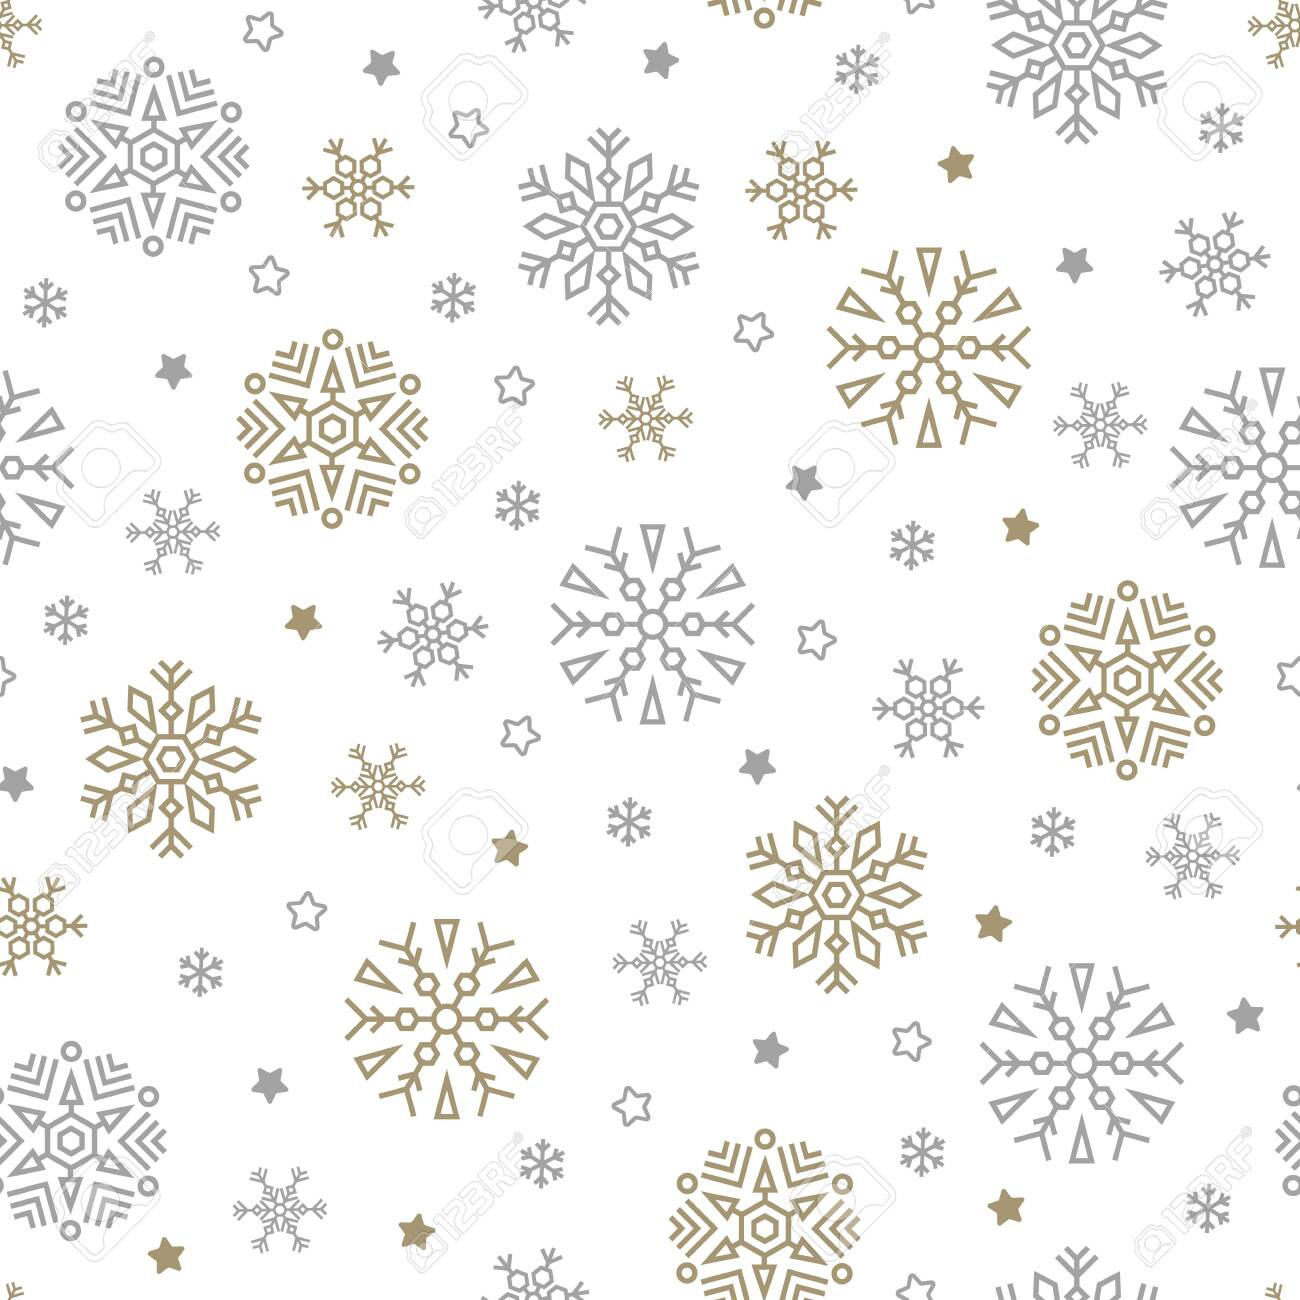 Christmas seamless pattern with snowflakes and stars on white background. Vector illustration. New Year background. For web, wrapping paper, scrapbooking, for printing on textile, crockery, package. - 137168018